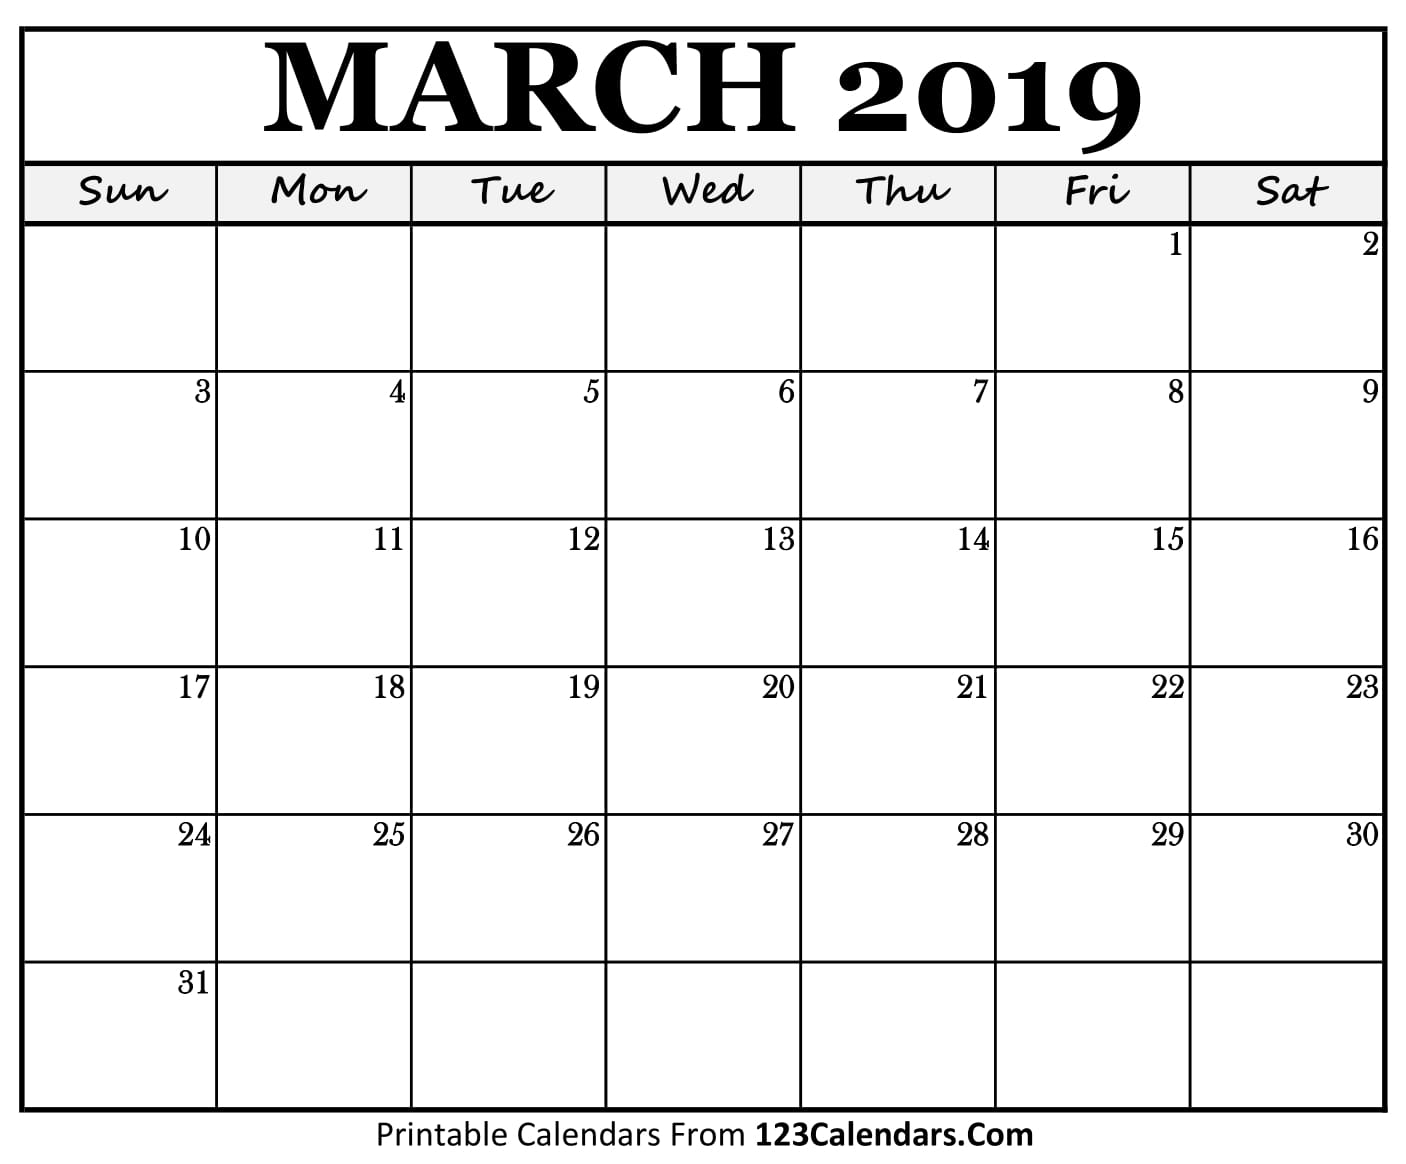 Calendar March 2018 Doc : Printable march calendar templates calendars